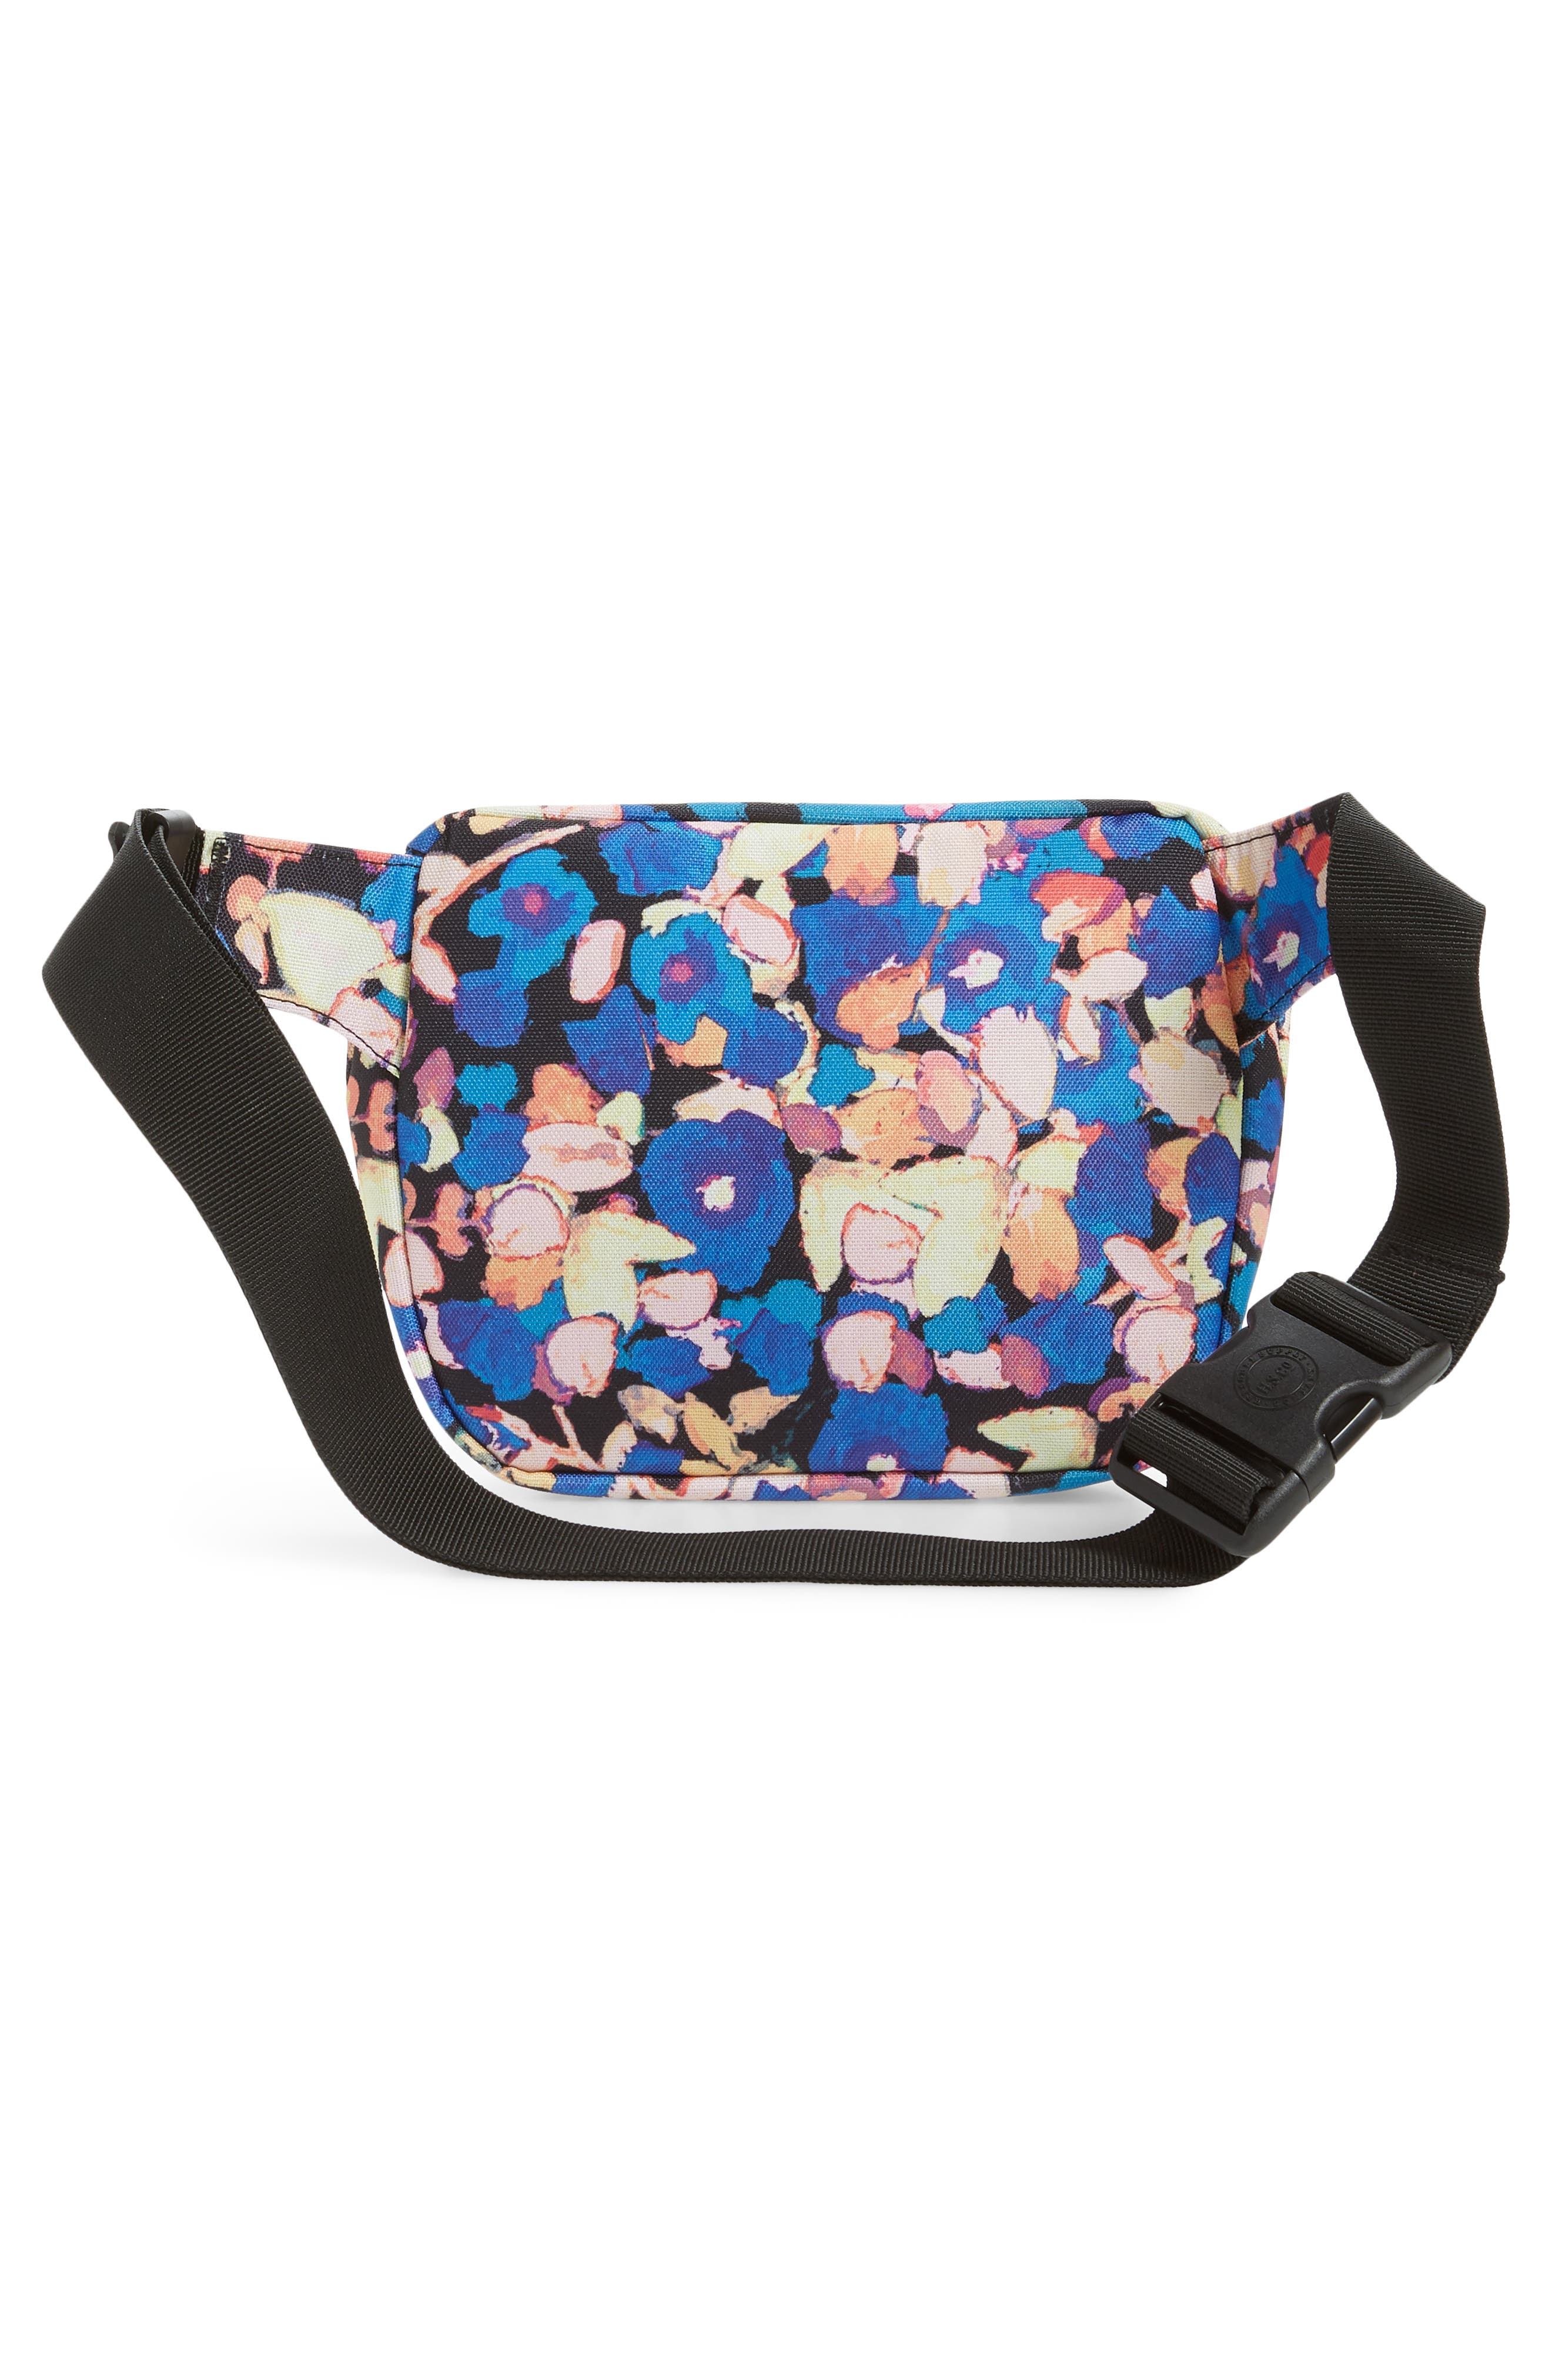 HERSCHEL SUPPLY CO., Fifteen Belt Bag, Alternate thumbnail 5, color, PAINTED FLORAL